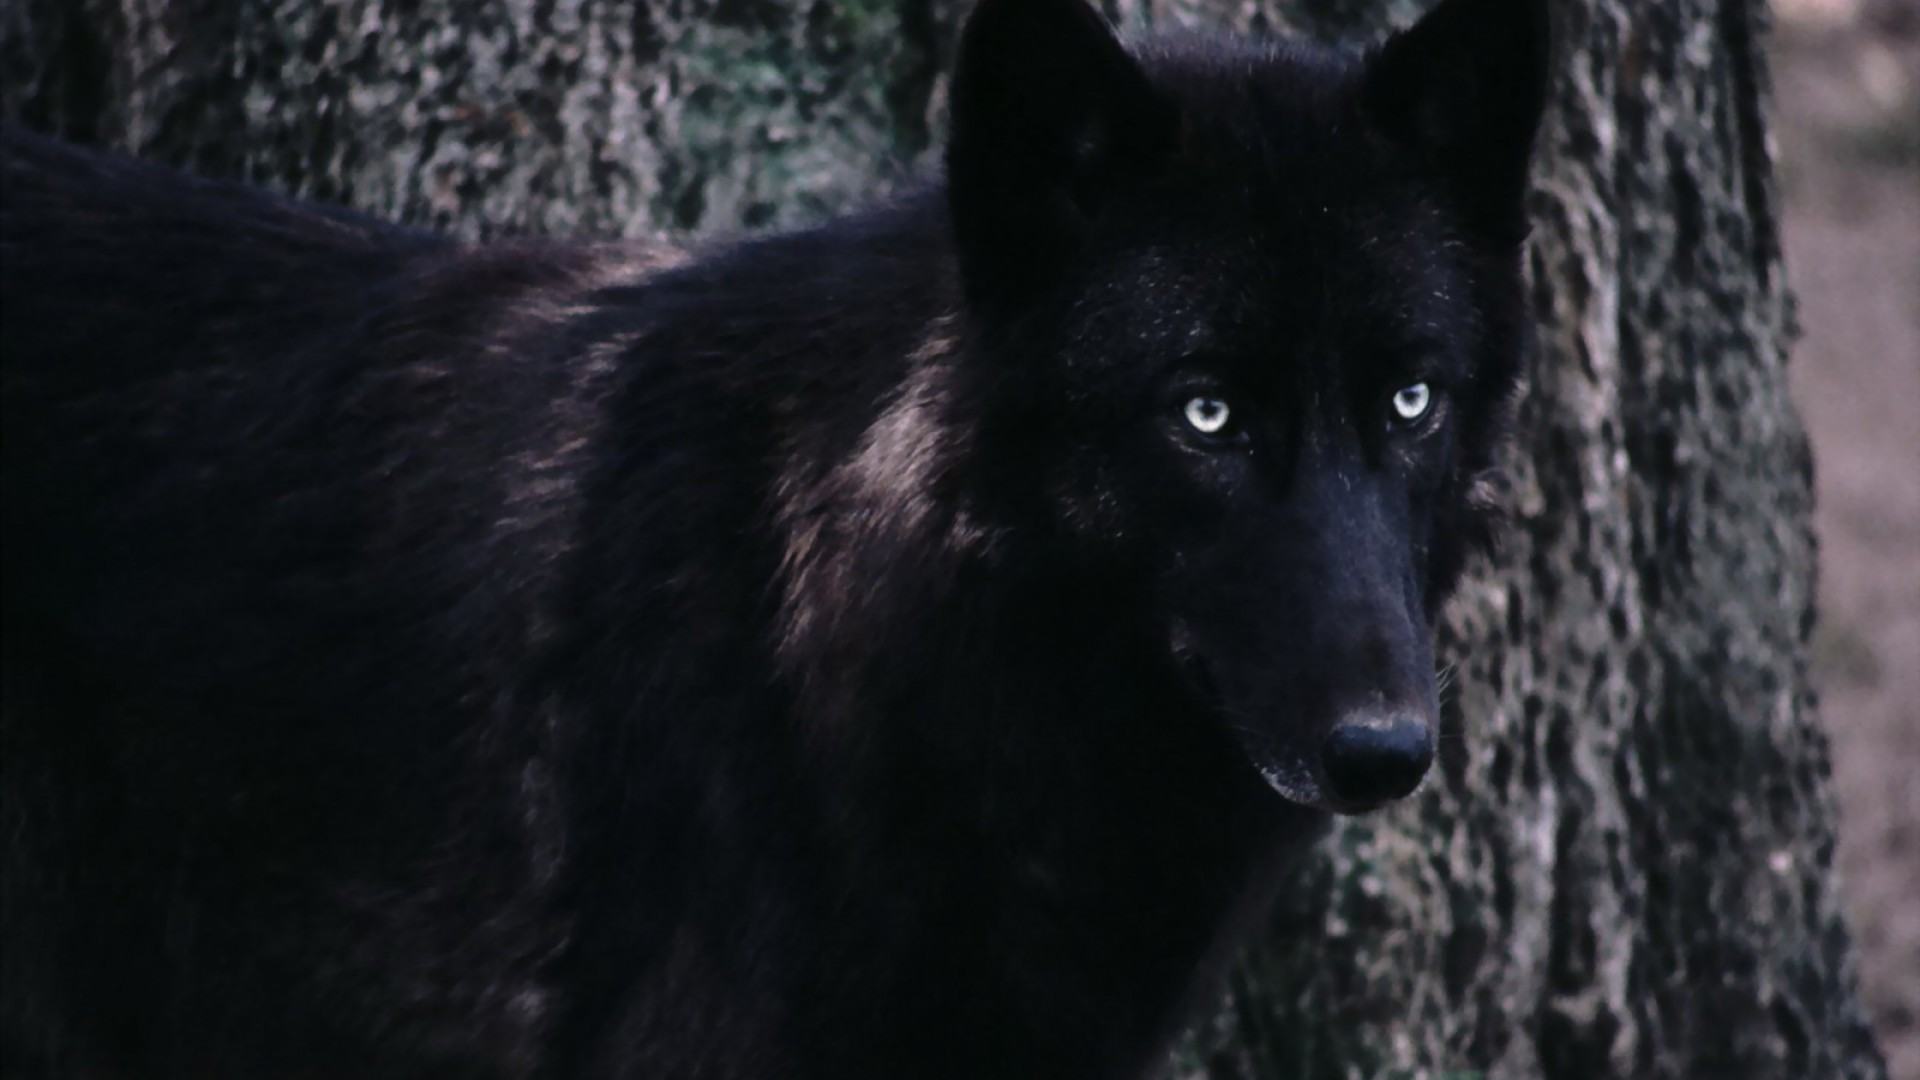 Black Wolf Wallpaper Hd Black Wolf With White Eyes 130076 Hd Wallpaper Backgrounds Download